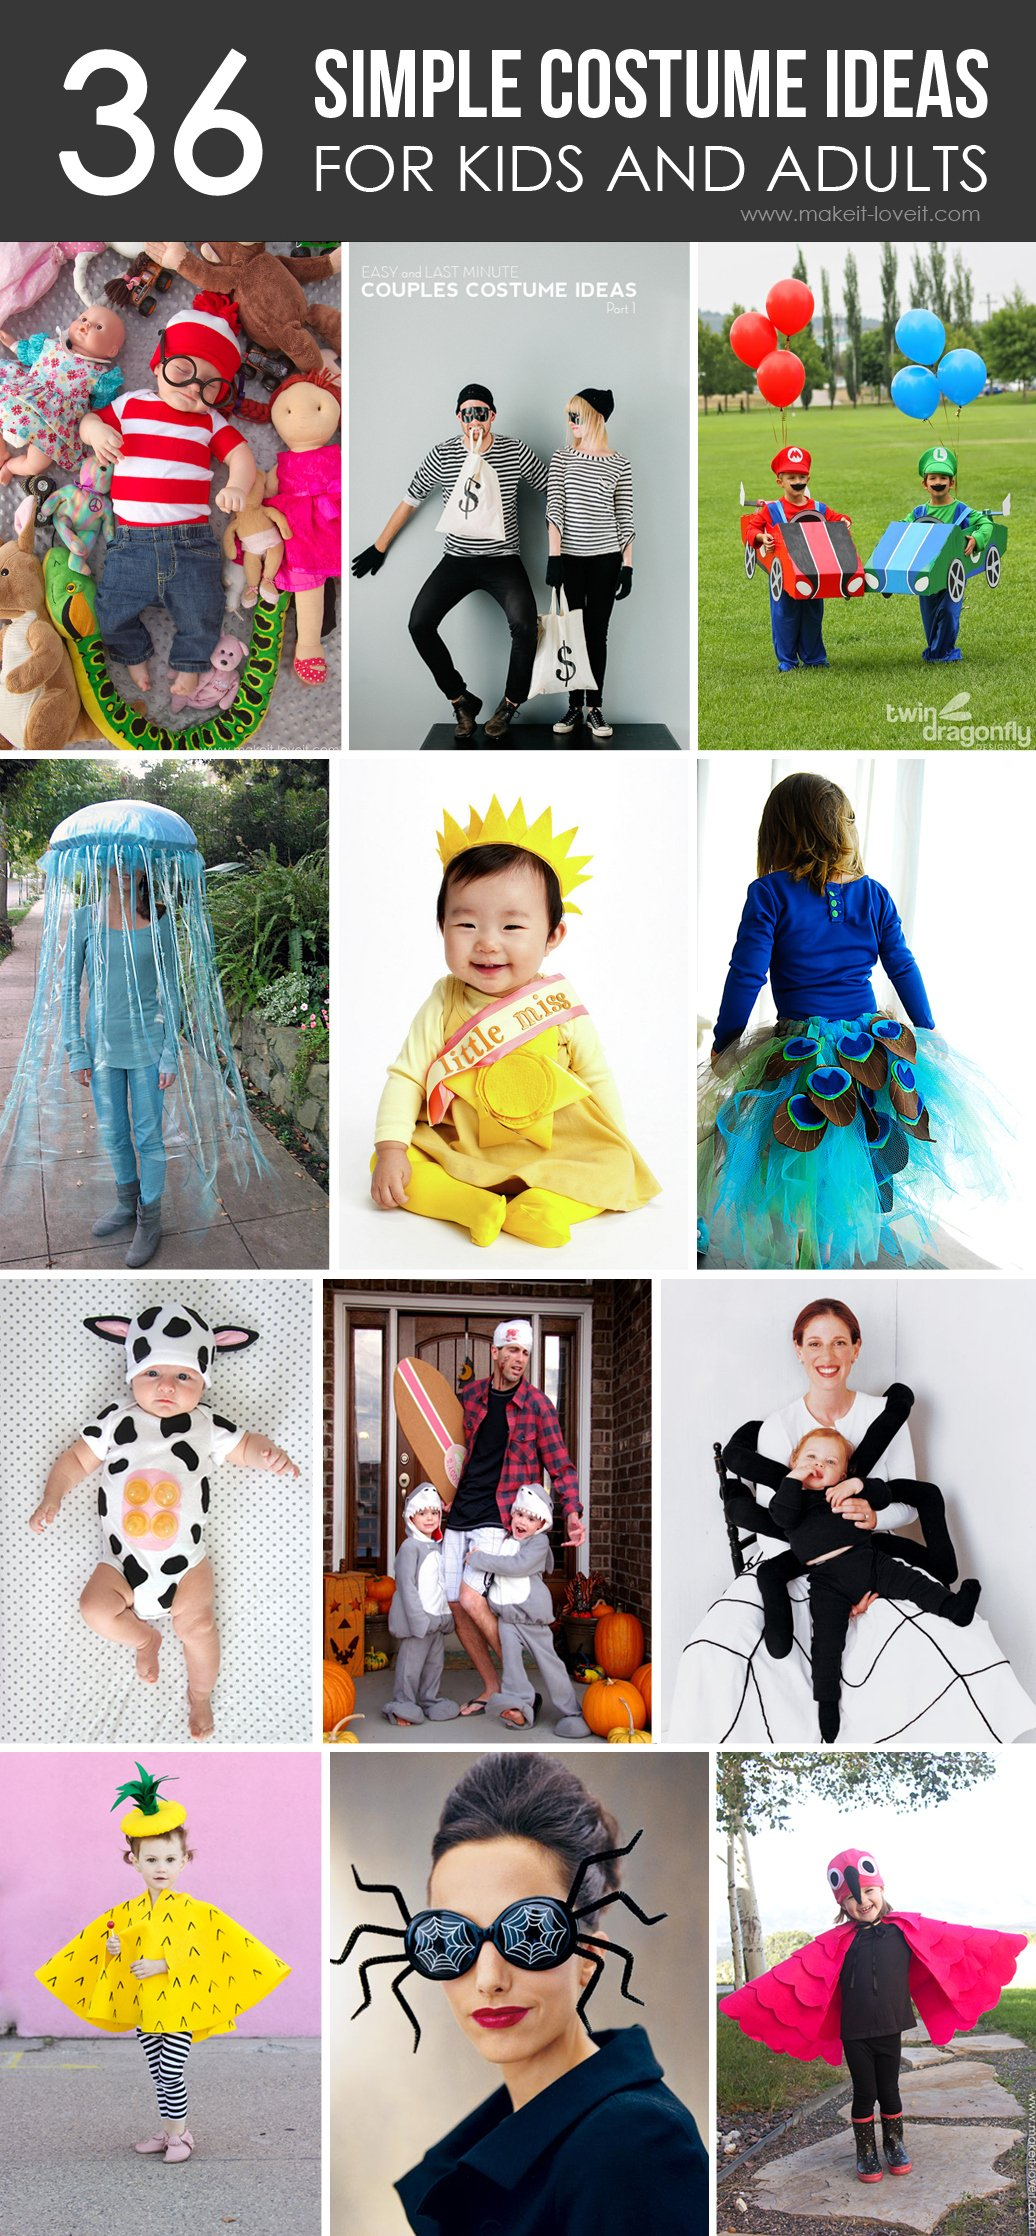 36 simple costume ideas for kids and adults make it and love it